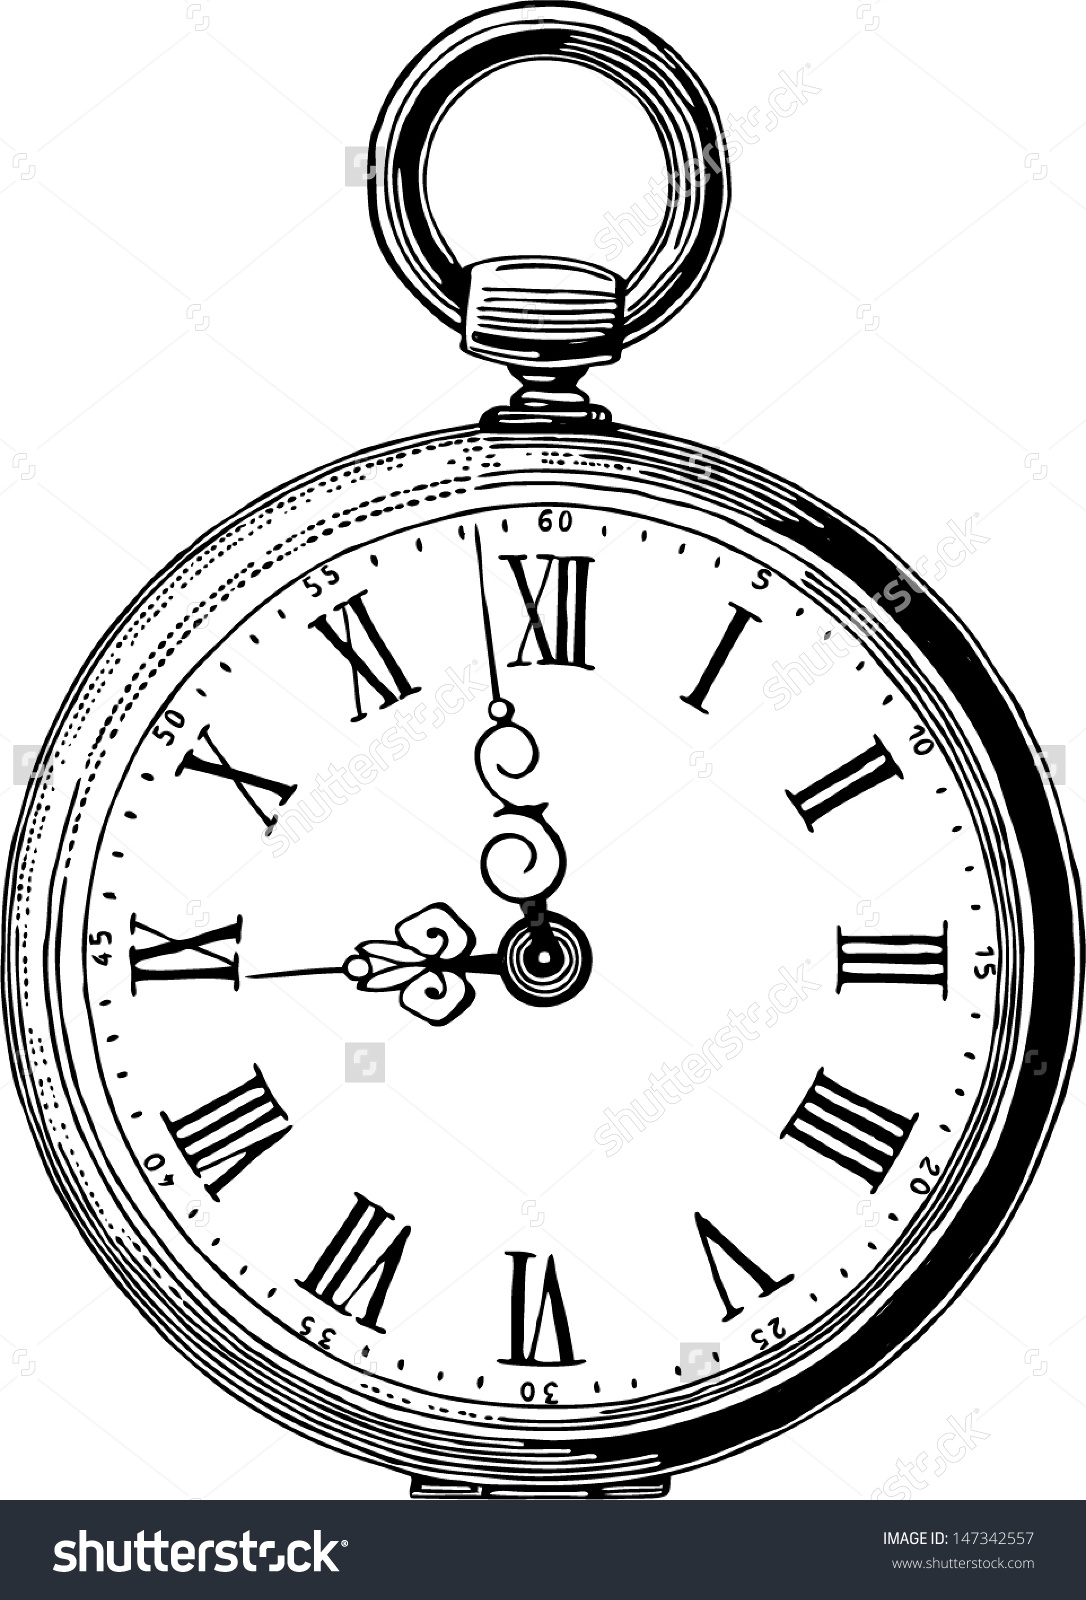 Drawn watch old fashioned Watch Open collection Search Google